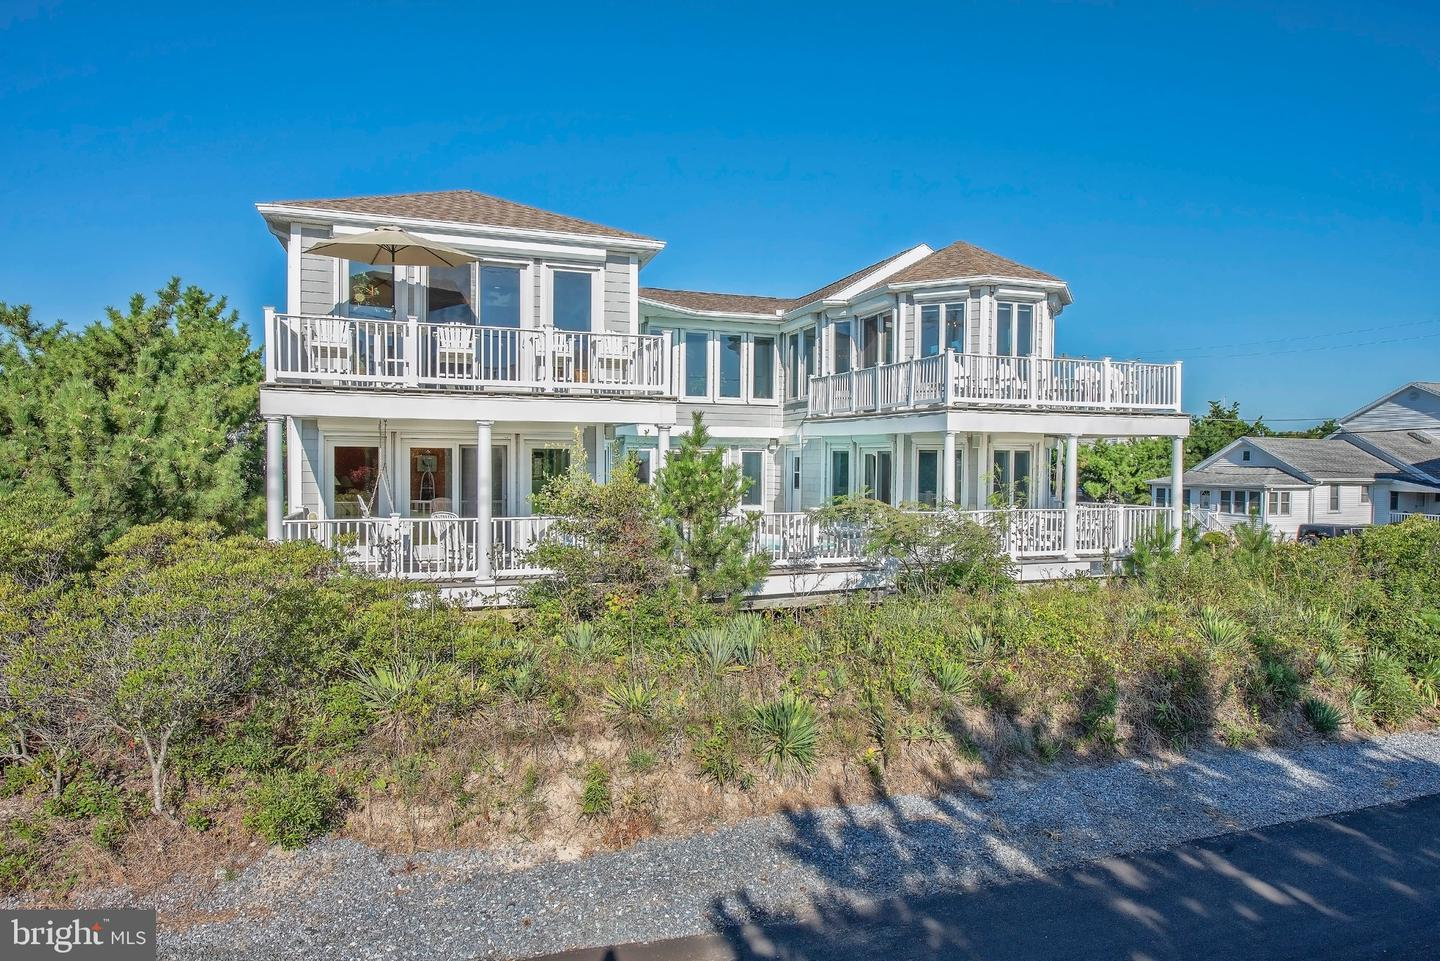 DESU147280-302007867517-2019-08-31-13-42-10 810 Bunting Ave | Fenwick Island, De Real Estate For Sale | MLS# Desu147280  - Suzanne Macnab